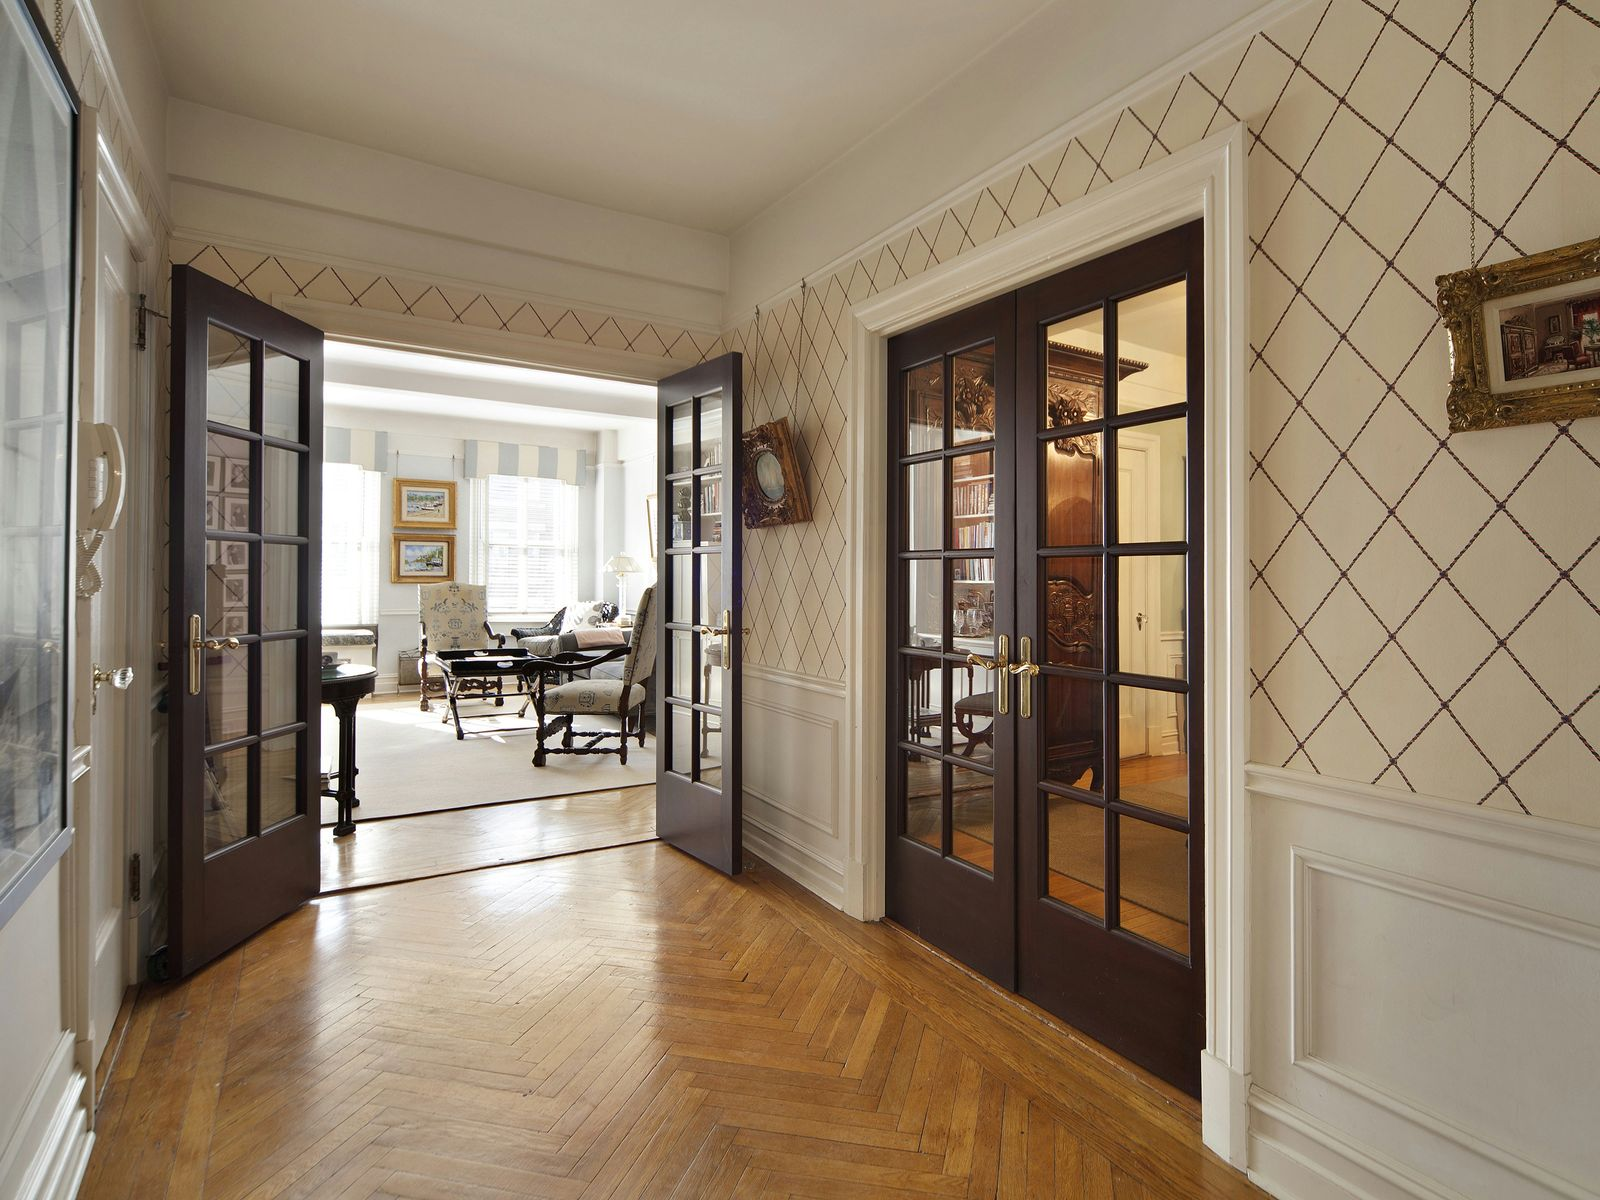 17 E 96th St- Classic 5 off Central Park, New York NY Cooperative - New York City Real Estate